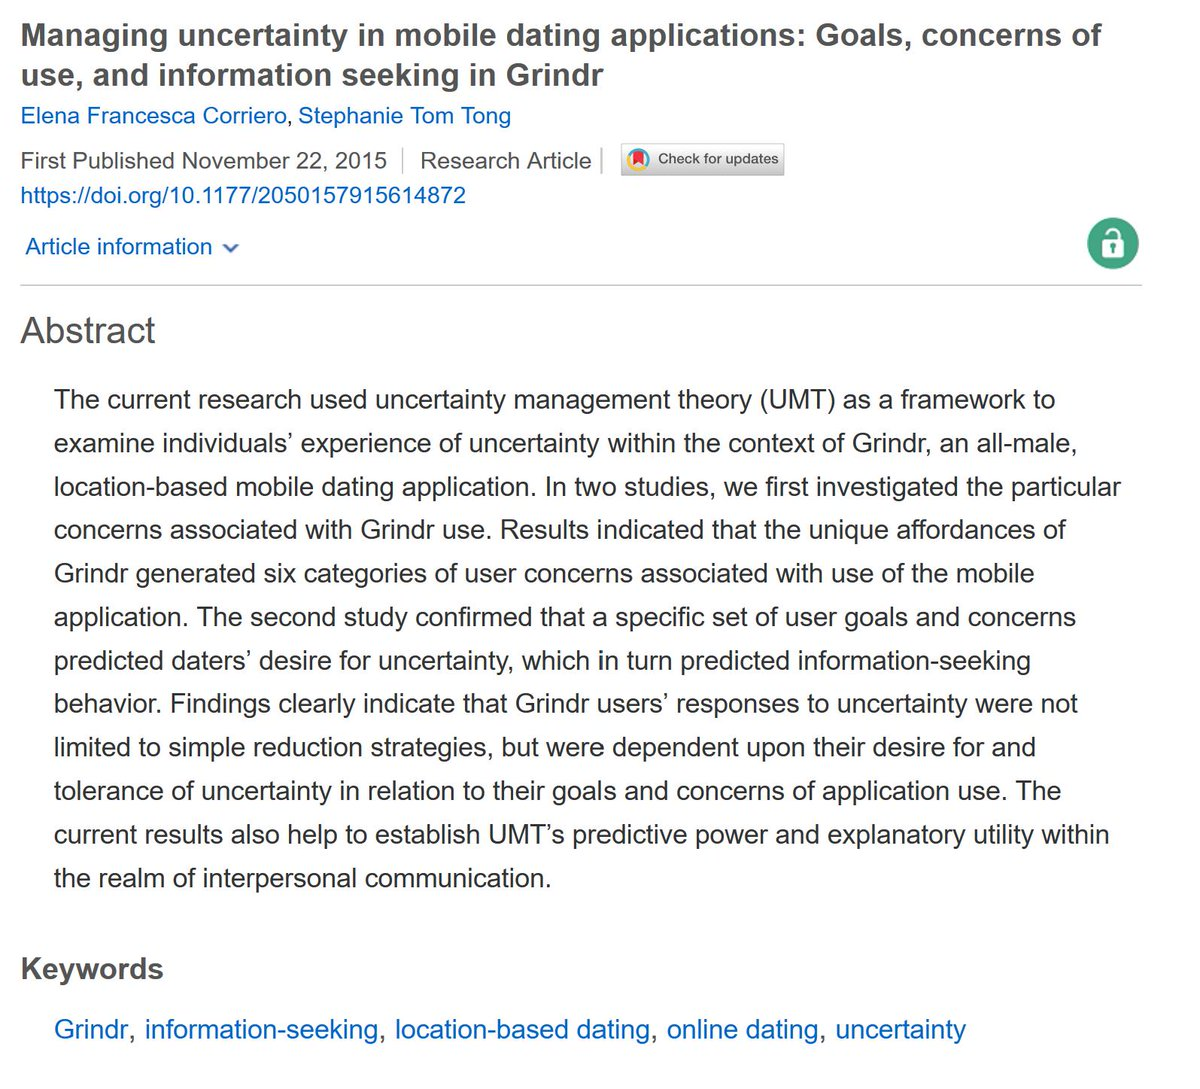 Ninth in our series highlighting female scholars in celebration of #IWD2019: @stomtong and E. Corriero&#39;s excellent paper &quot;Managing uncertainty in mobile dating applications&quot;. Now #OpenAccess.   https:// journals.sagepub.com/doi/full/10.11 77/2050157915614872 &nbsp; … <br>http://pic.twitter.com/LDhZ8z7Znz